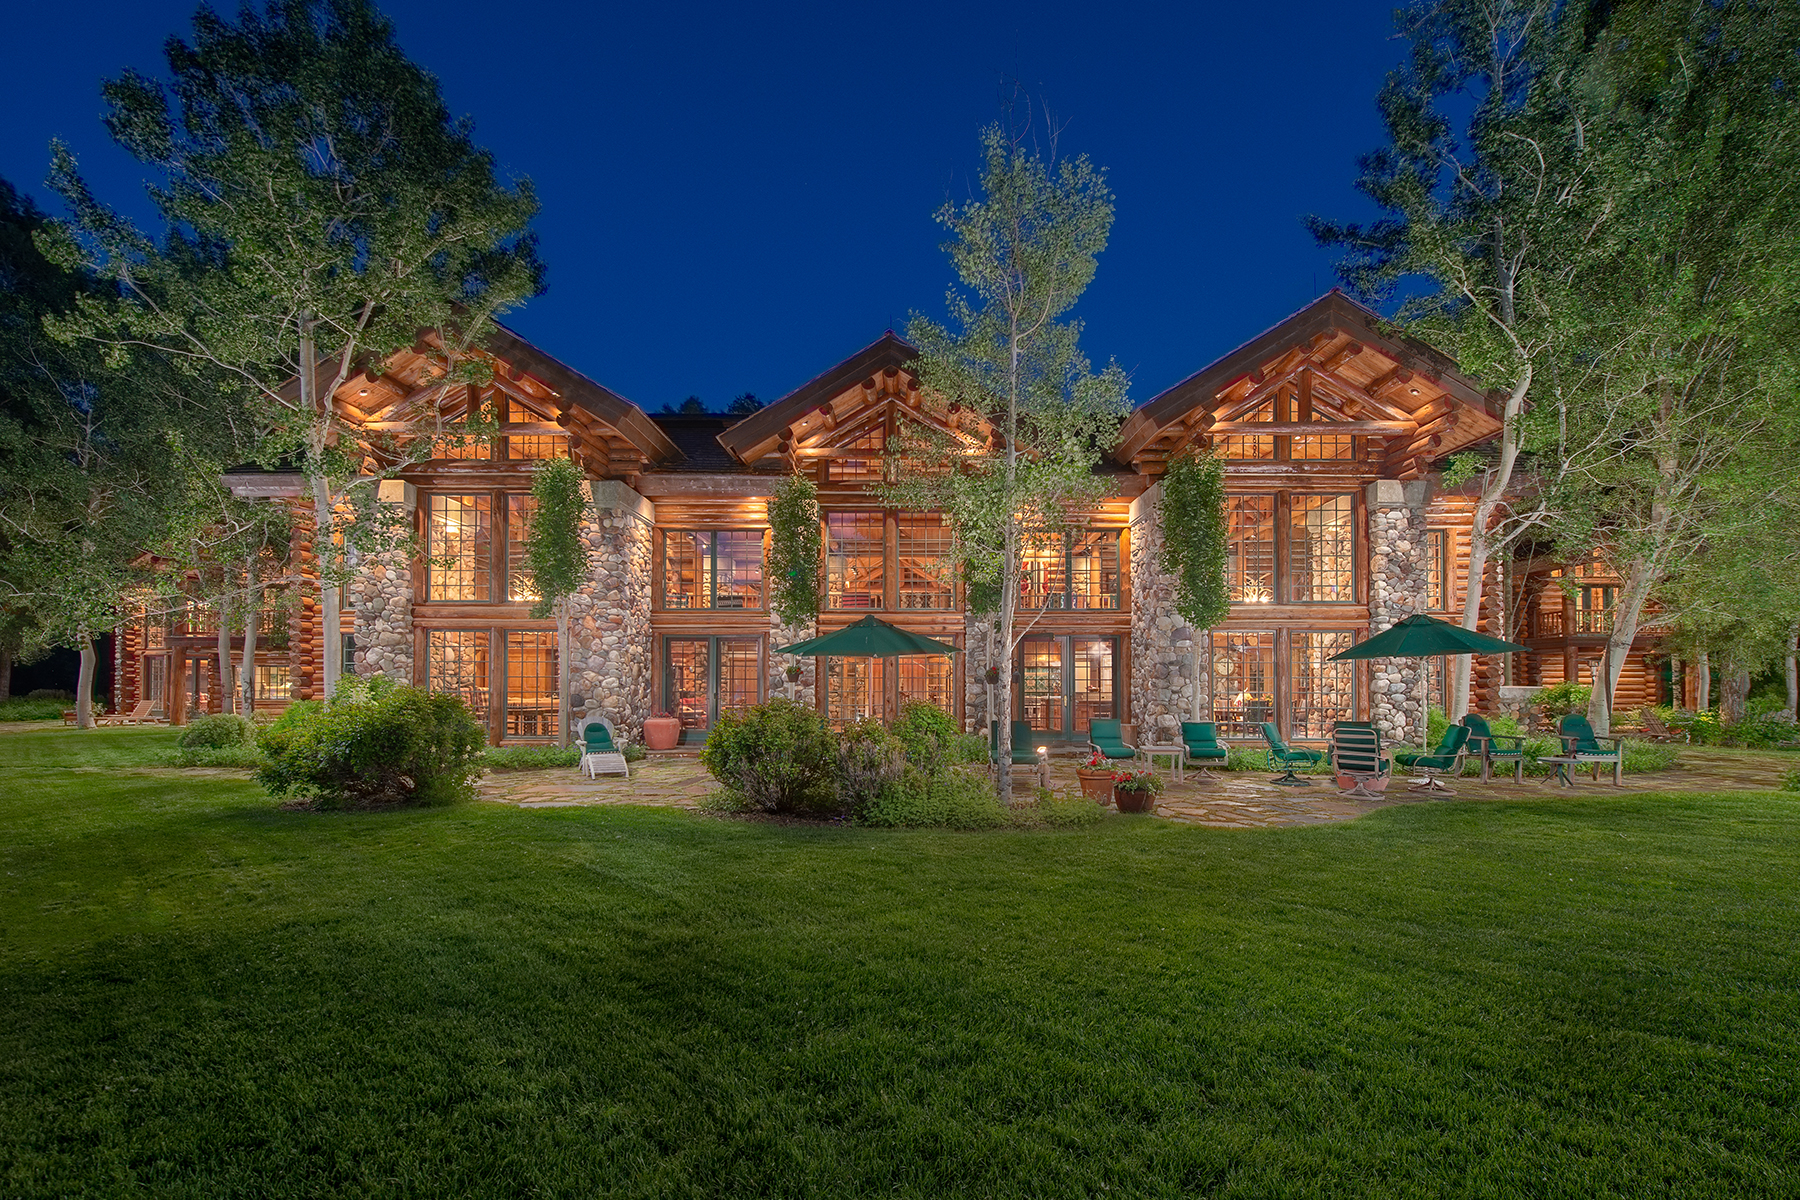 Single Family Homes for Sale at 70 Acre Estate on the Snake River 1100 Woodside Drive Jackson, Wyoming 83001 United States